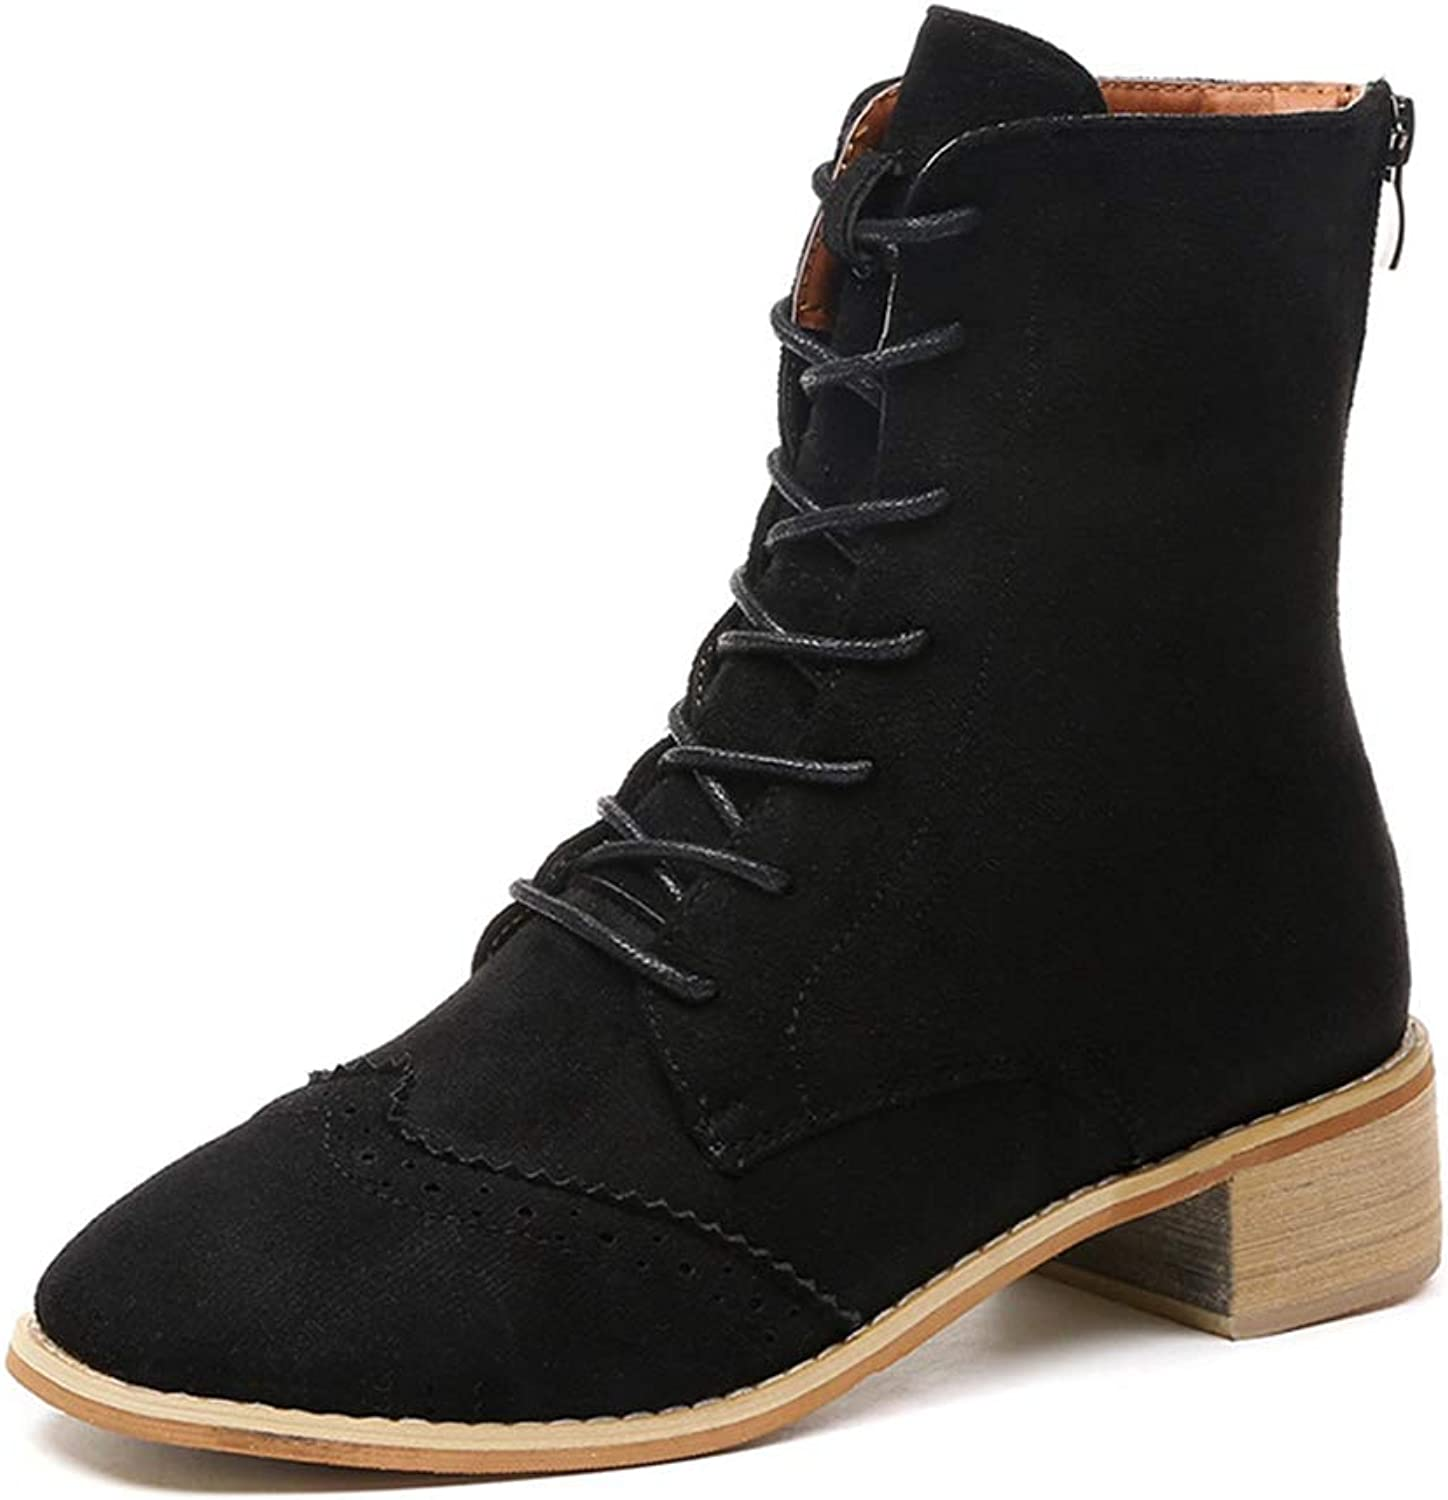 York Zhu Womens Boots - Round Toe Lace up Suede Martin Black Boots Women